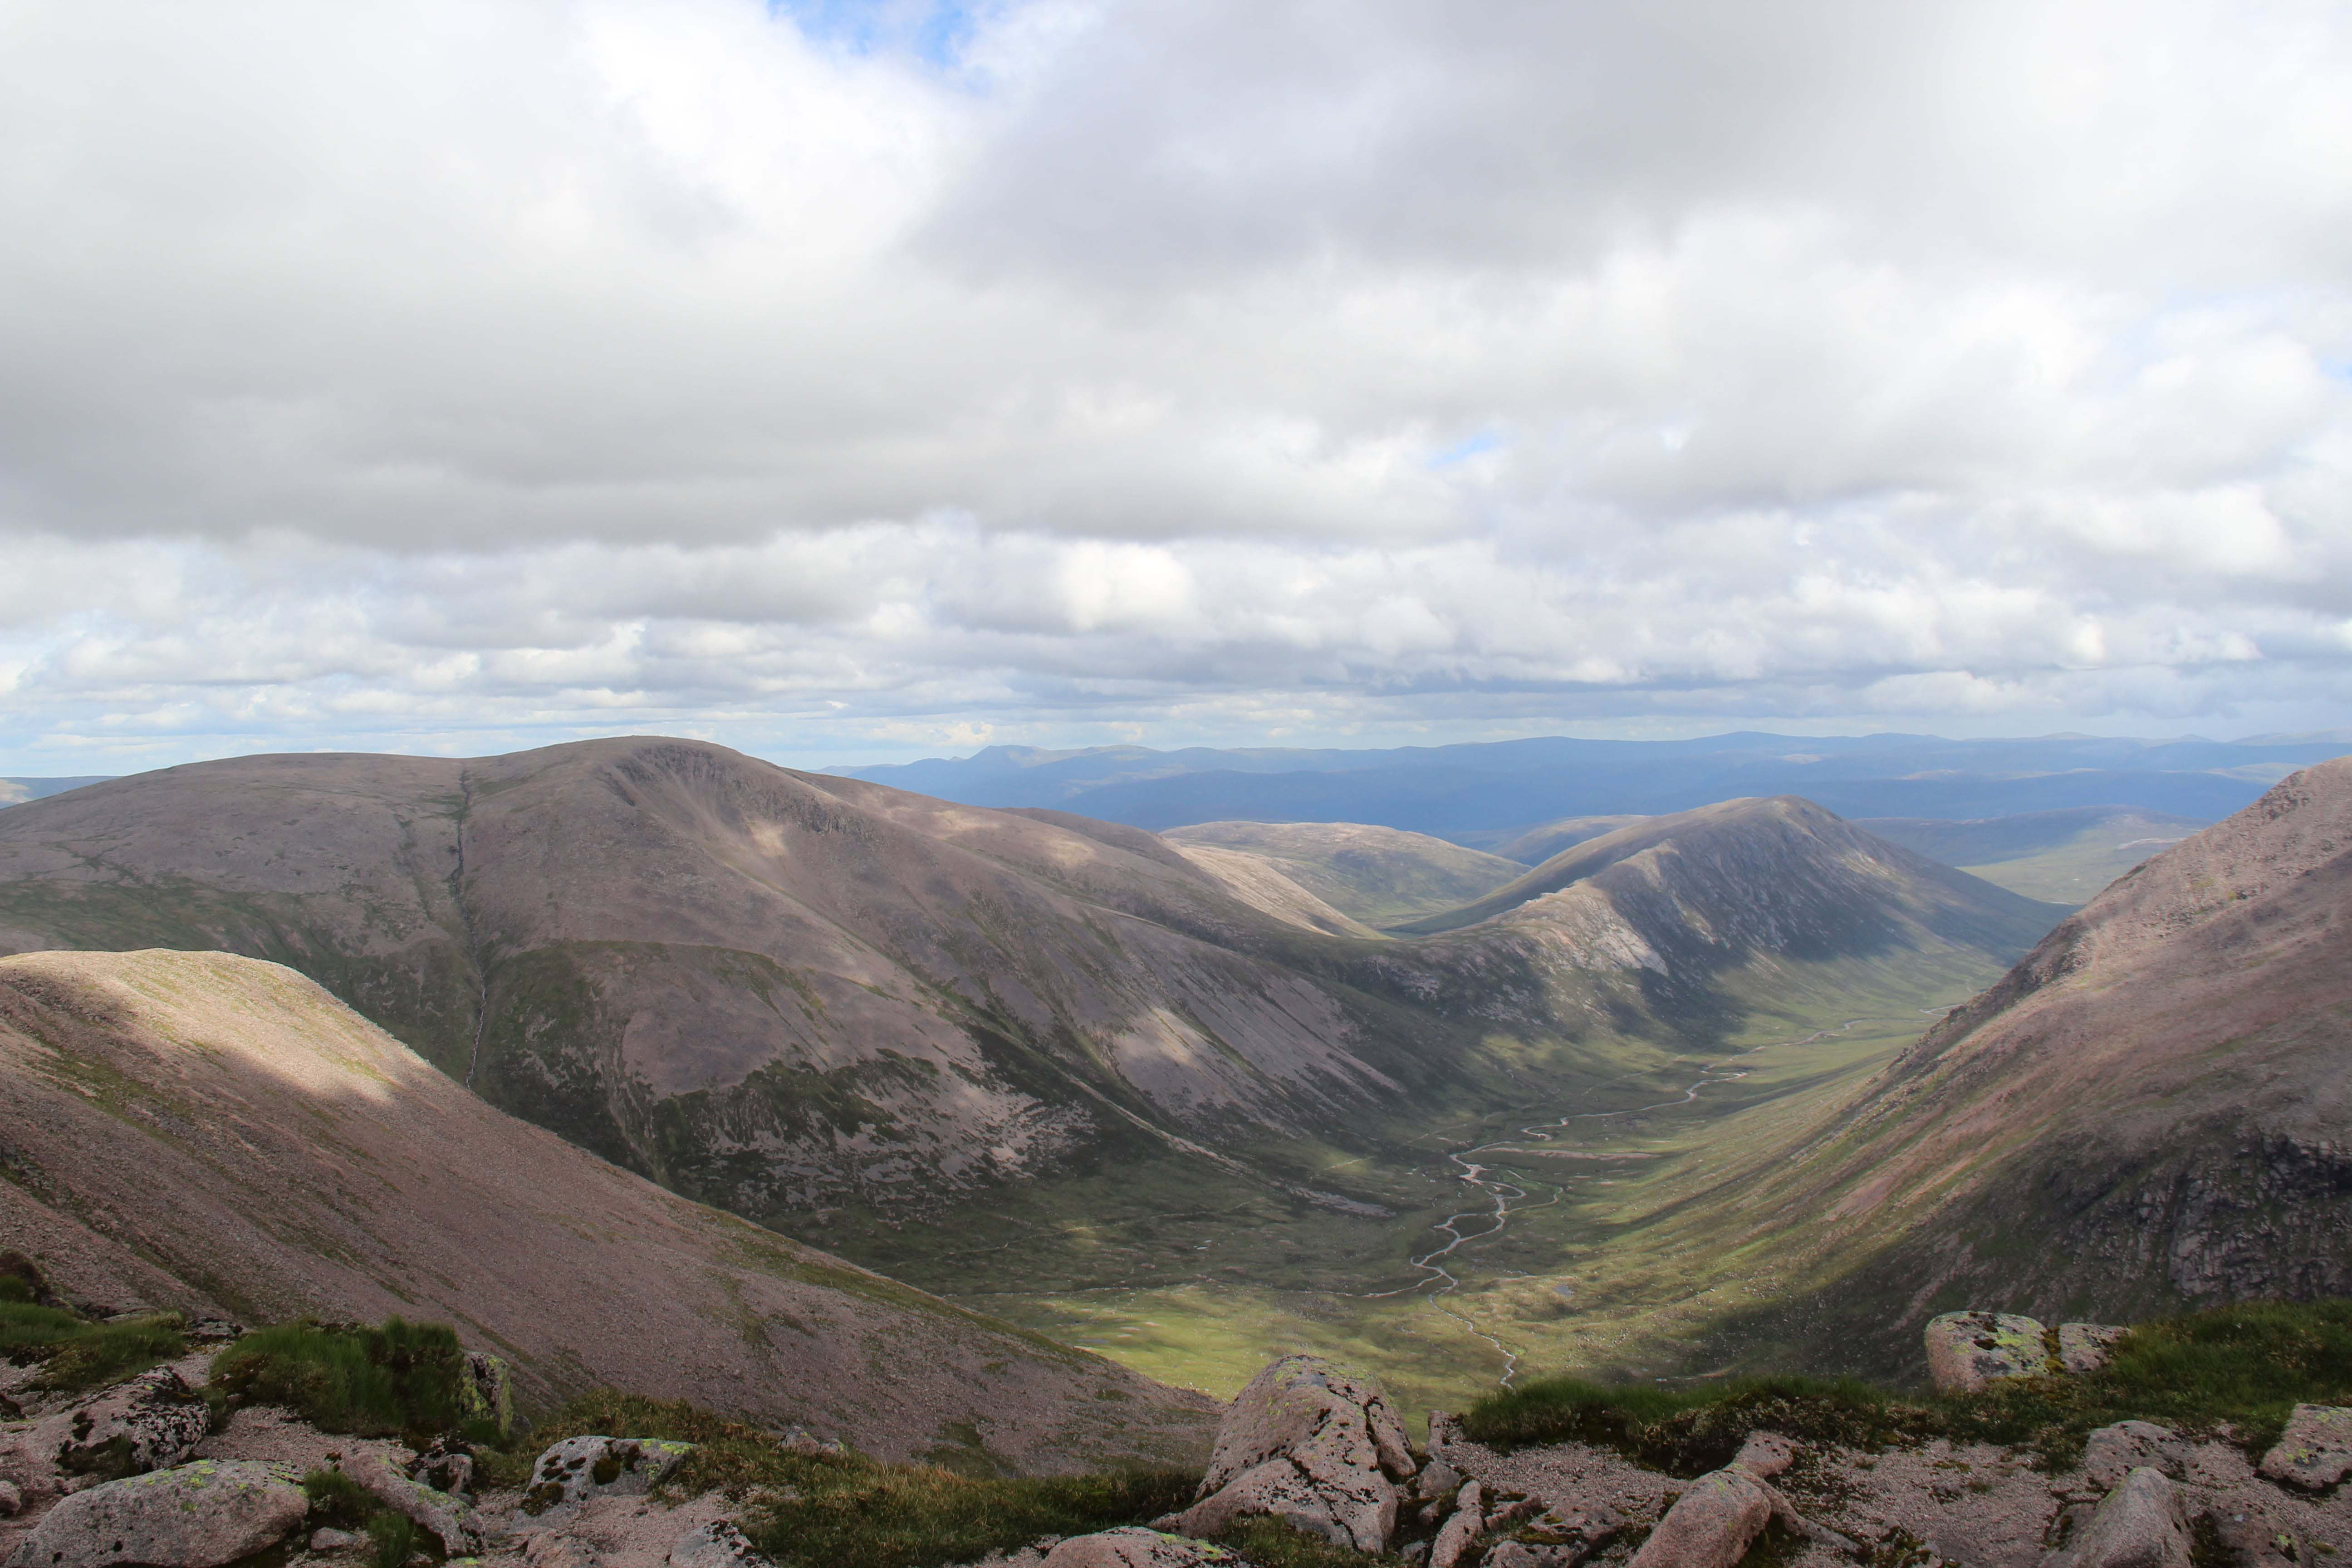 View of the Larig Ghru